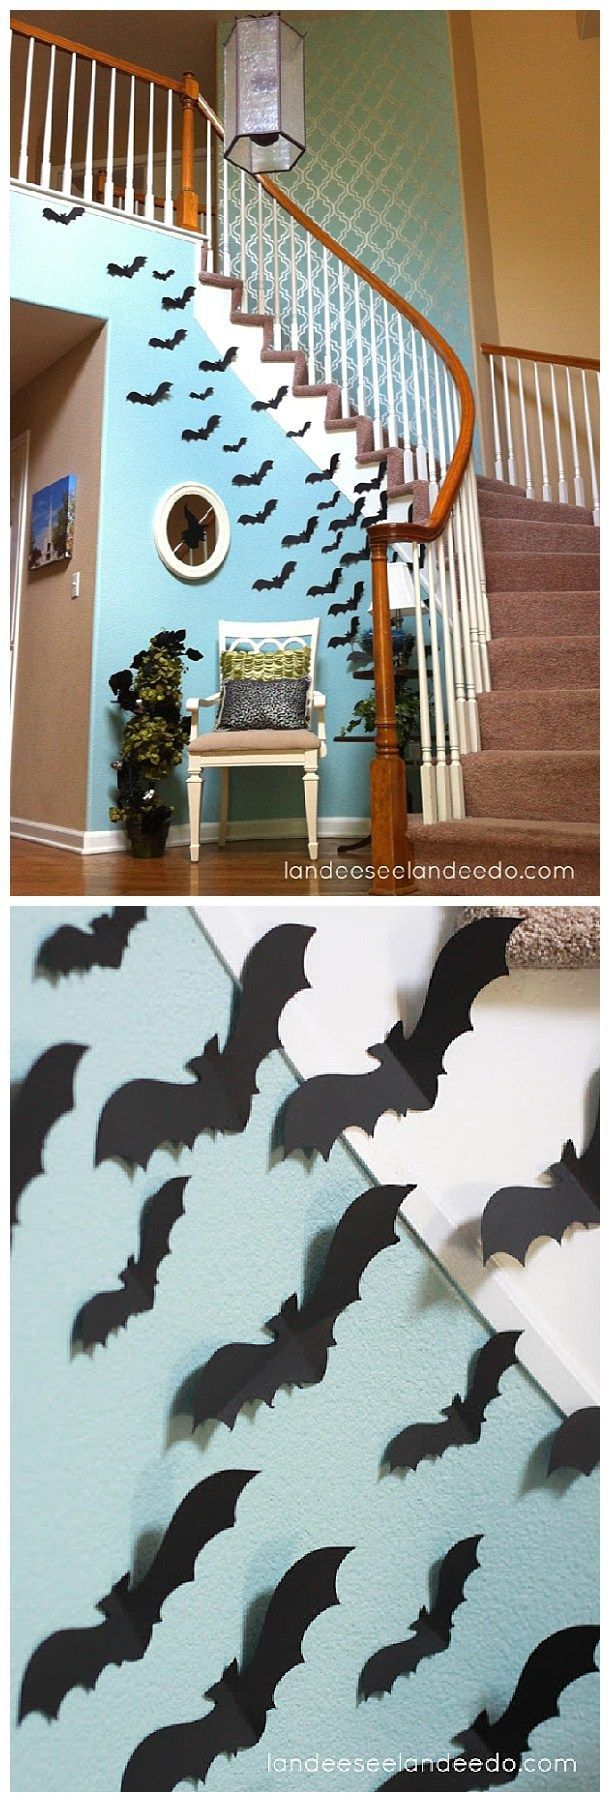 halloween ideas for women kids fun idea for your entryway or front porch create a wall of bats for your spooktacular halloween party lair